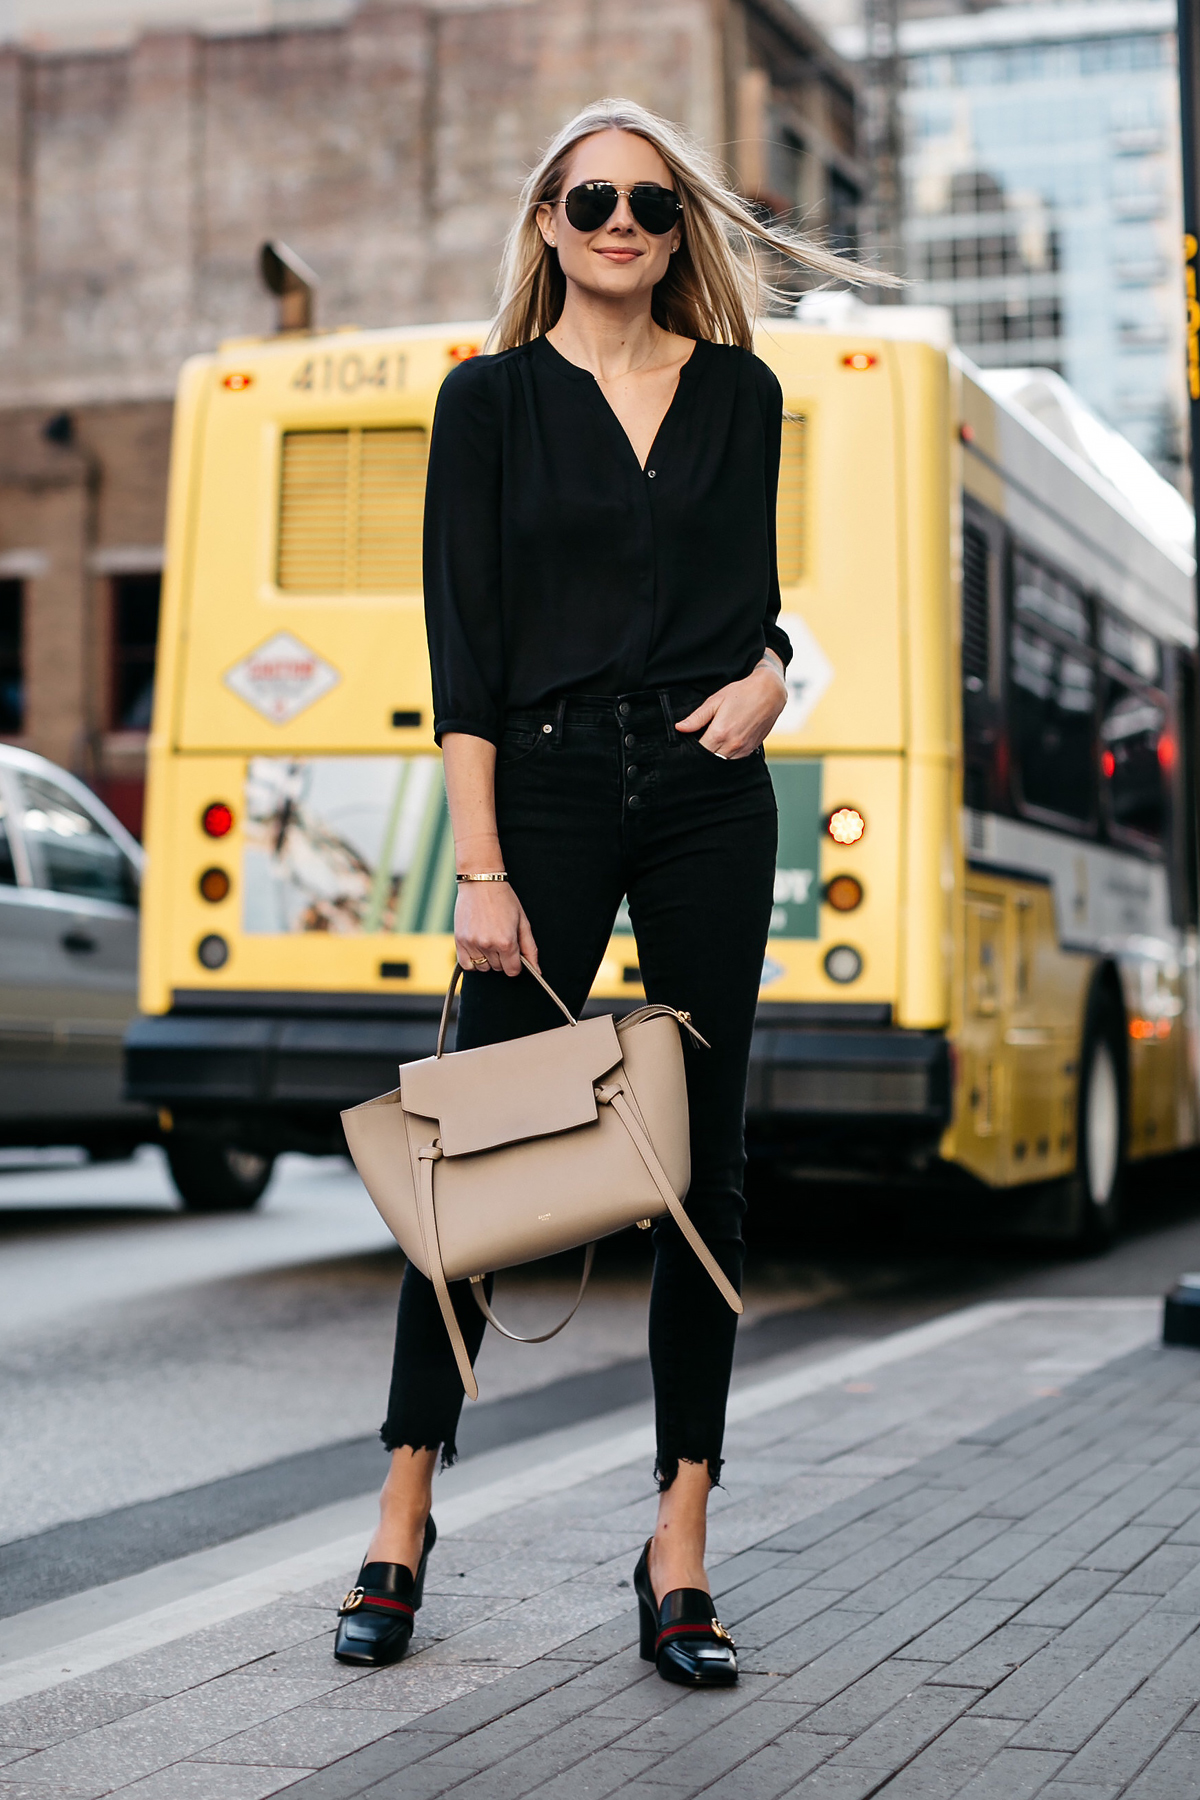 Blonde Woman Wearing Black Shirt Madewell Black Ripped Hem Skinny Jeans Gucci Black Peyton Block Heel Pumps Celine Belt Bag Celine Aviator Sunglasses Fashion Jackson Dallas Blogger Fashion Blogger Street Style